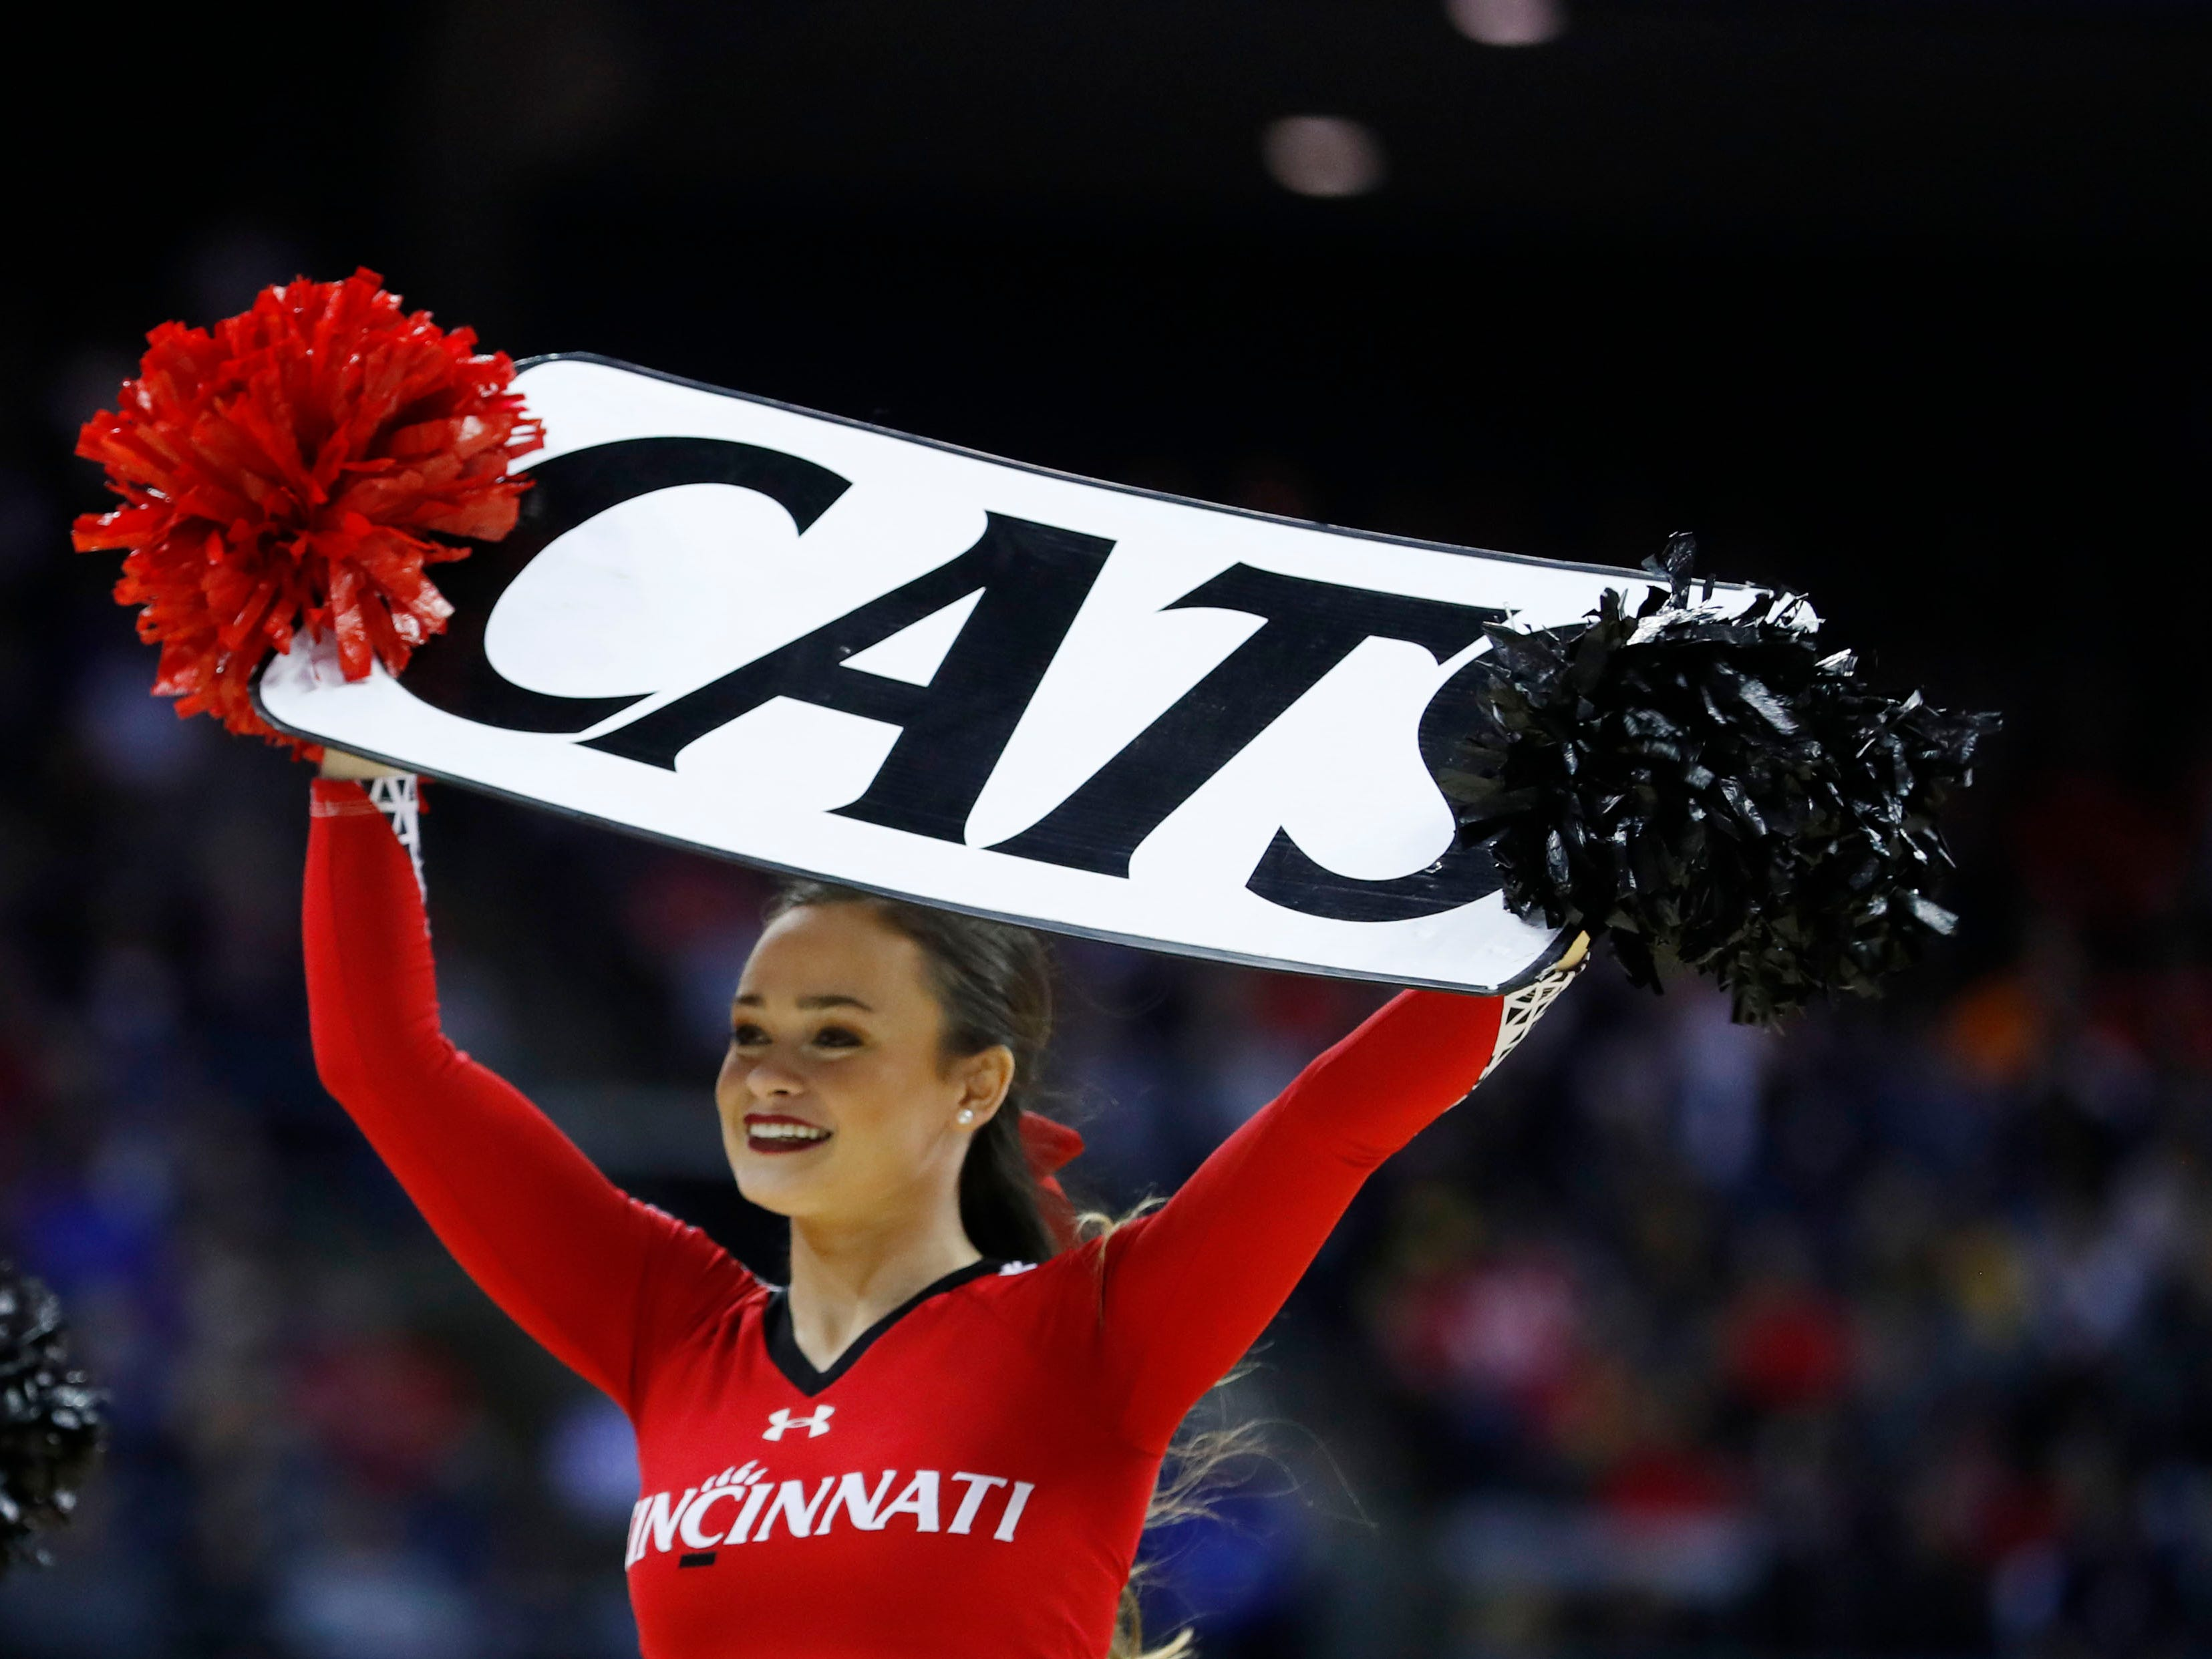 First round: A Cincinnati Bearcats cheerleader during the game against the Iowa Hawkeyes.